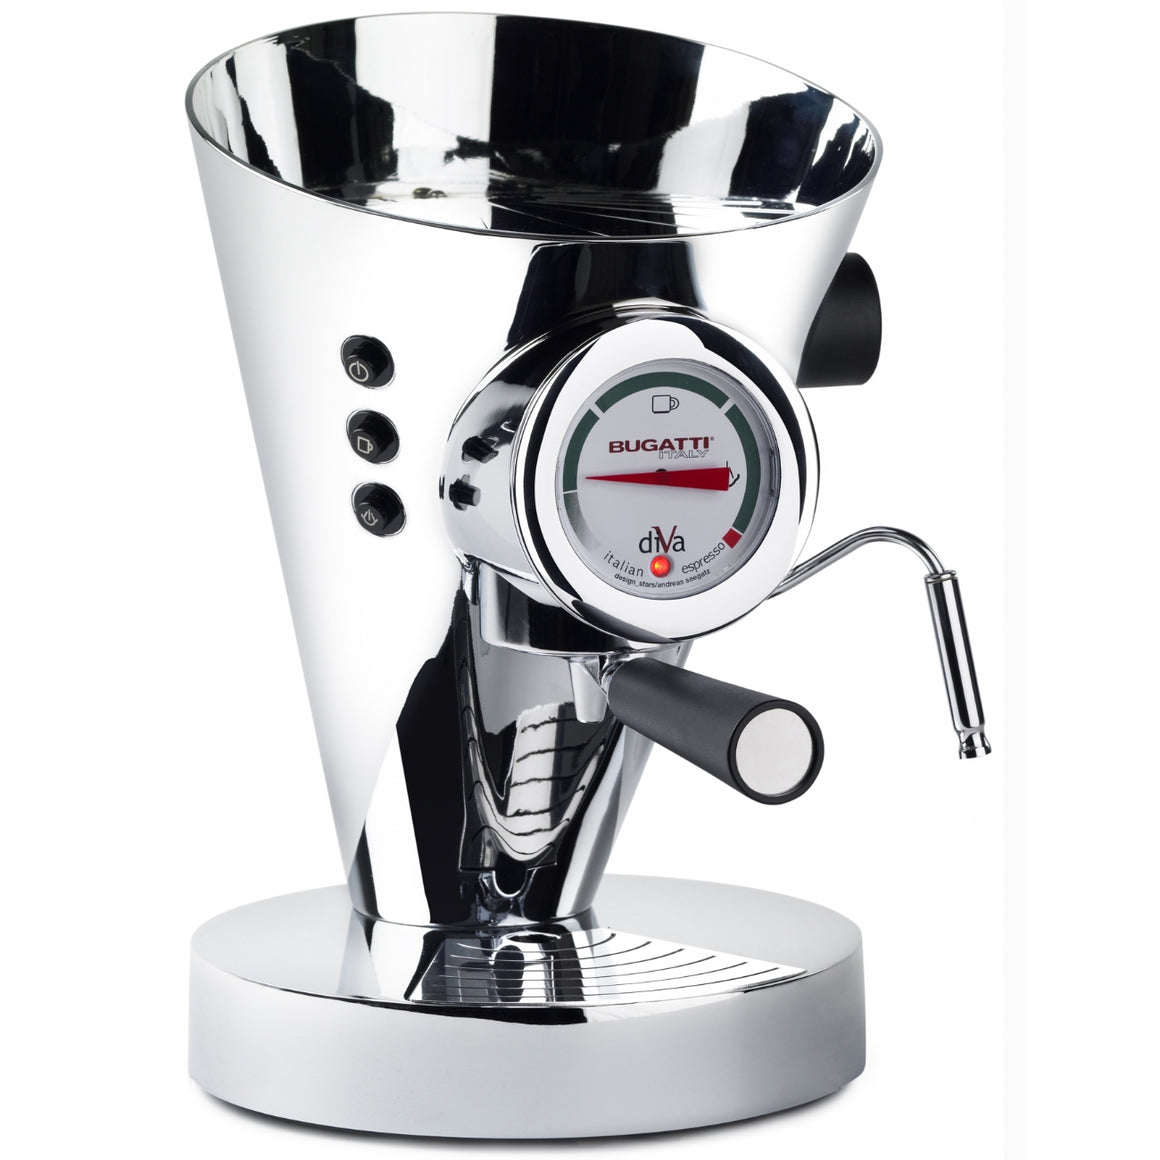 Bugatti - Diva Espresso Machine, Chrome